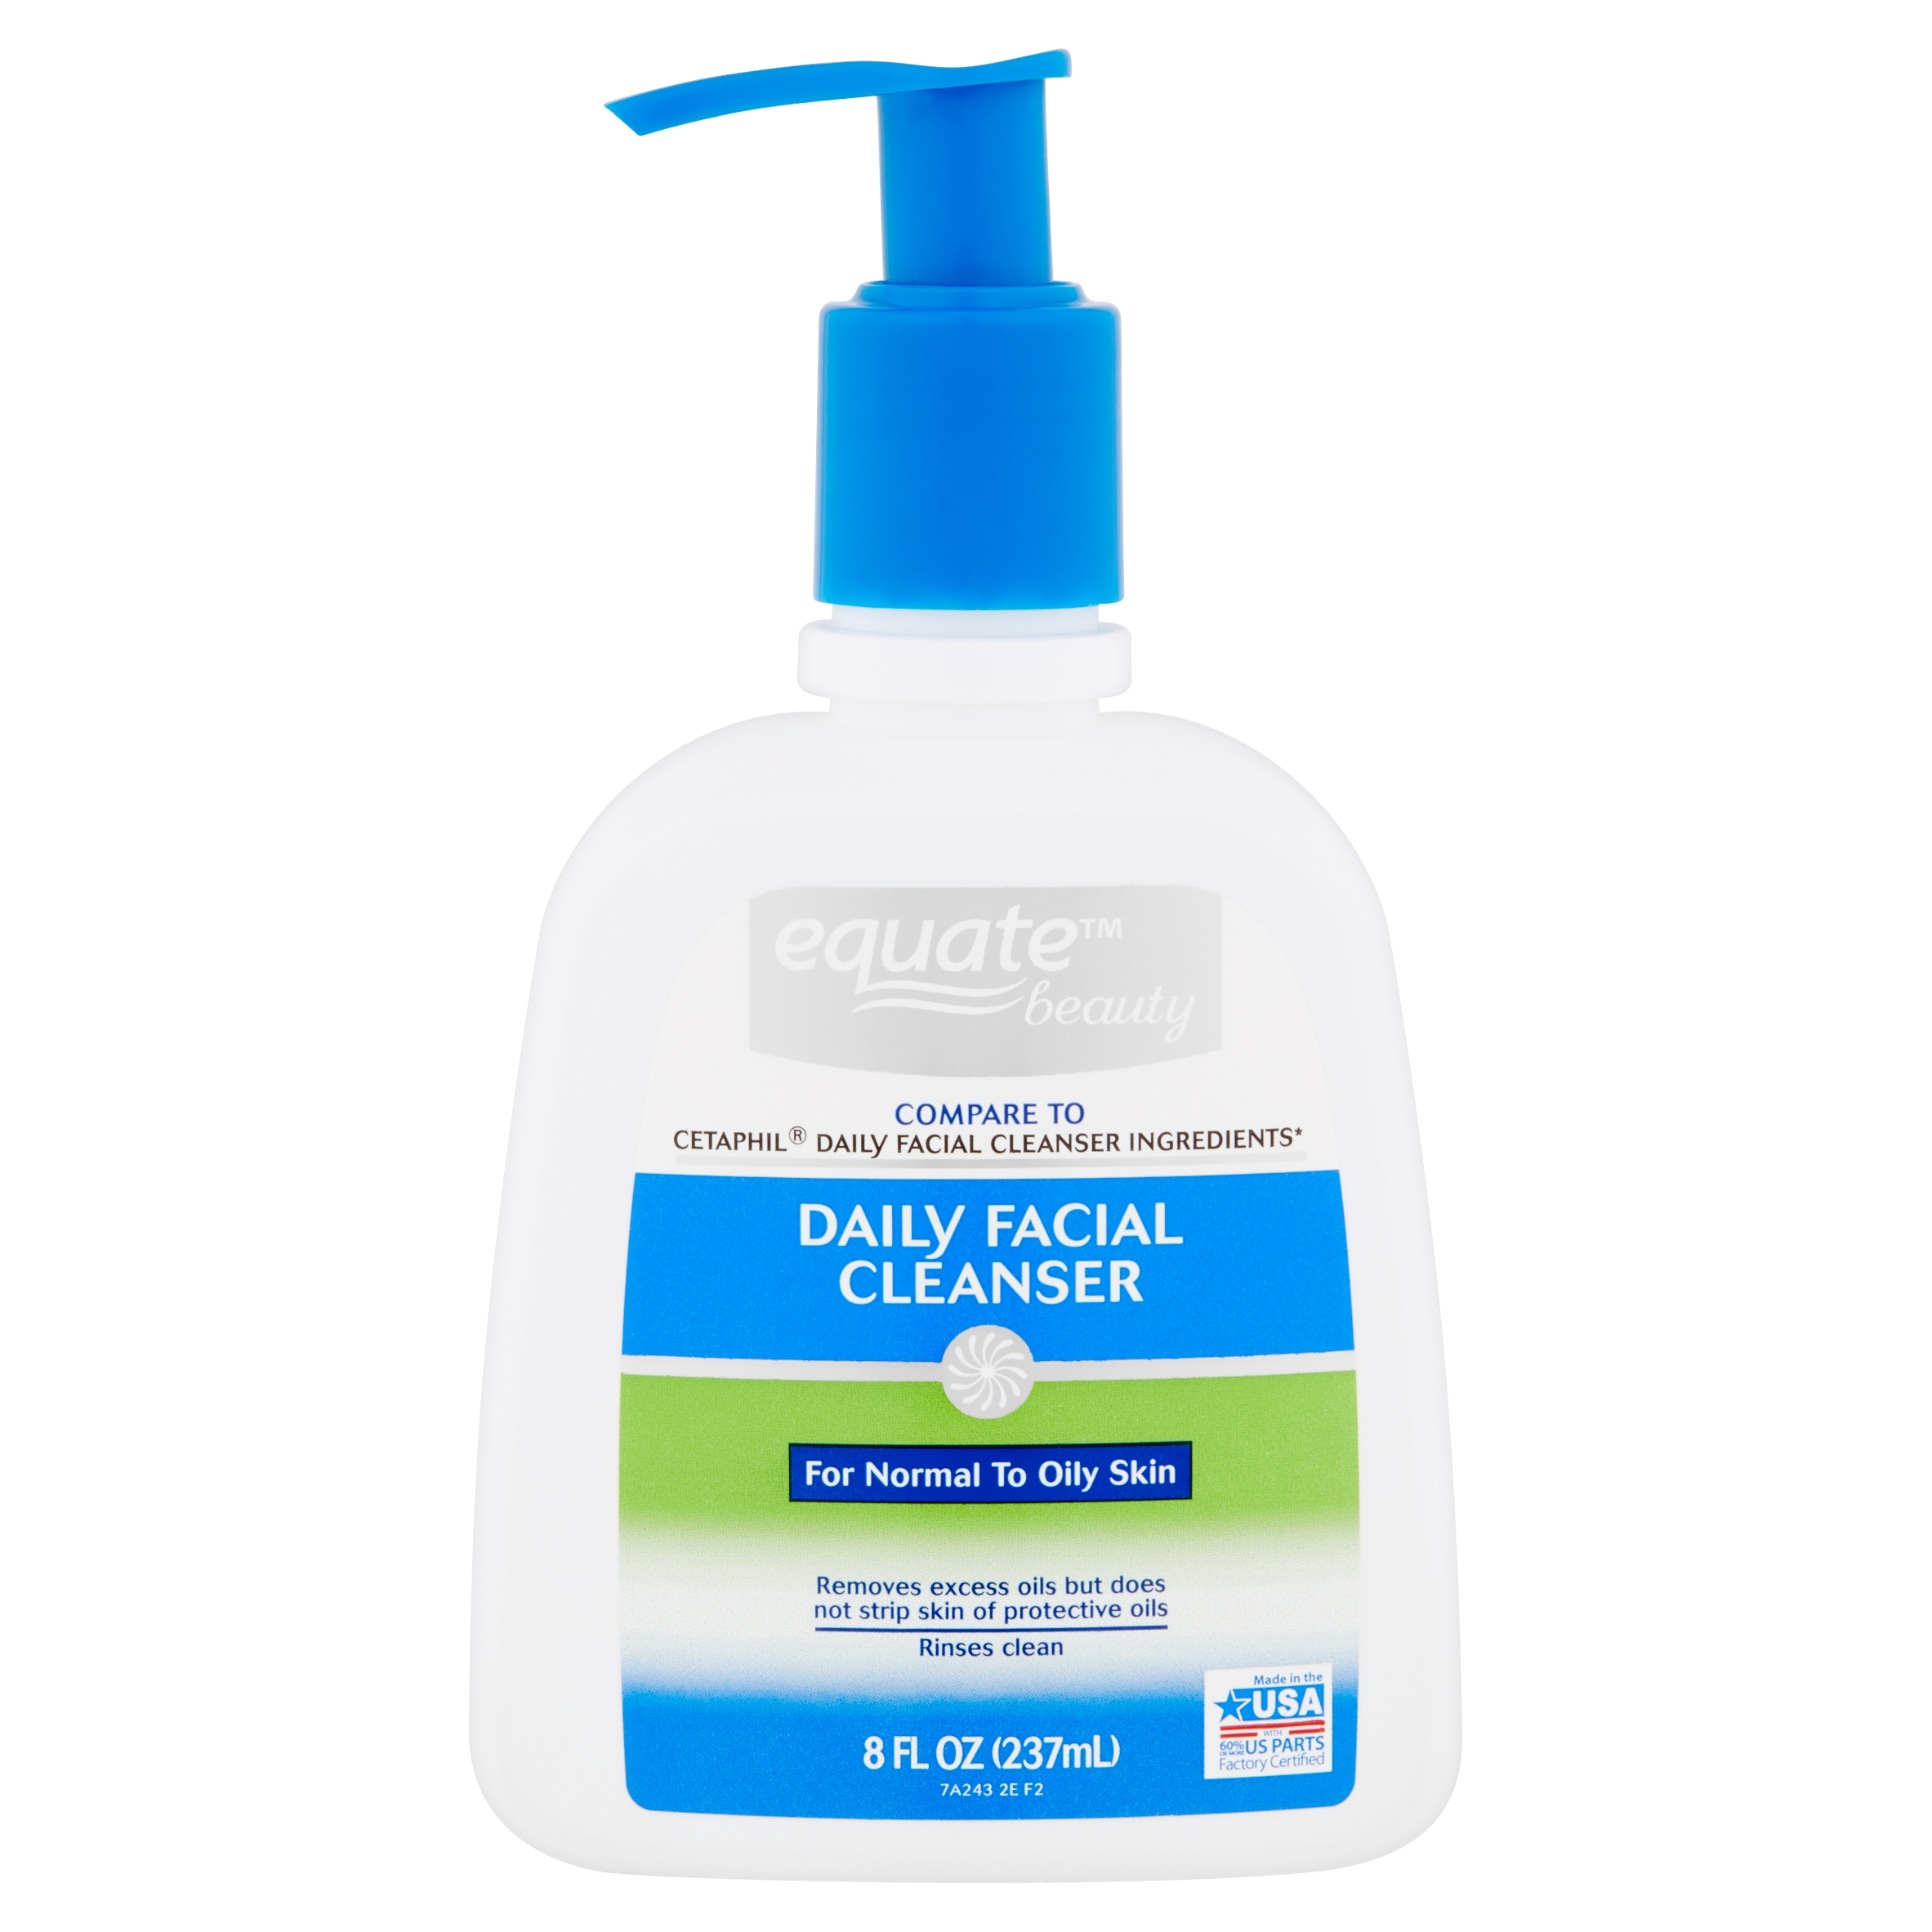 Can equate creamy facial cleanser amusing question